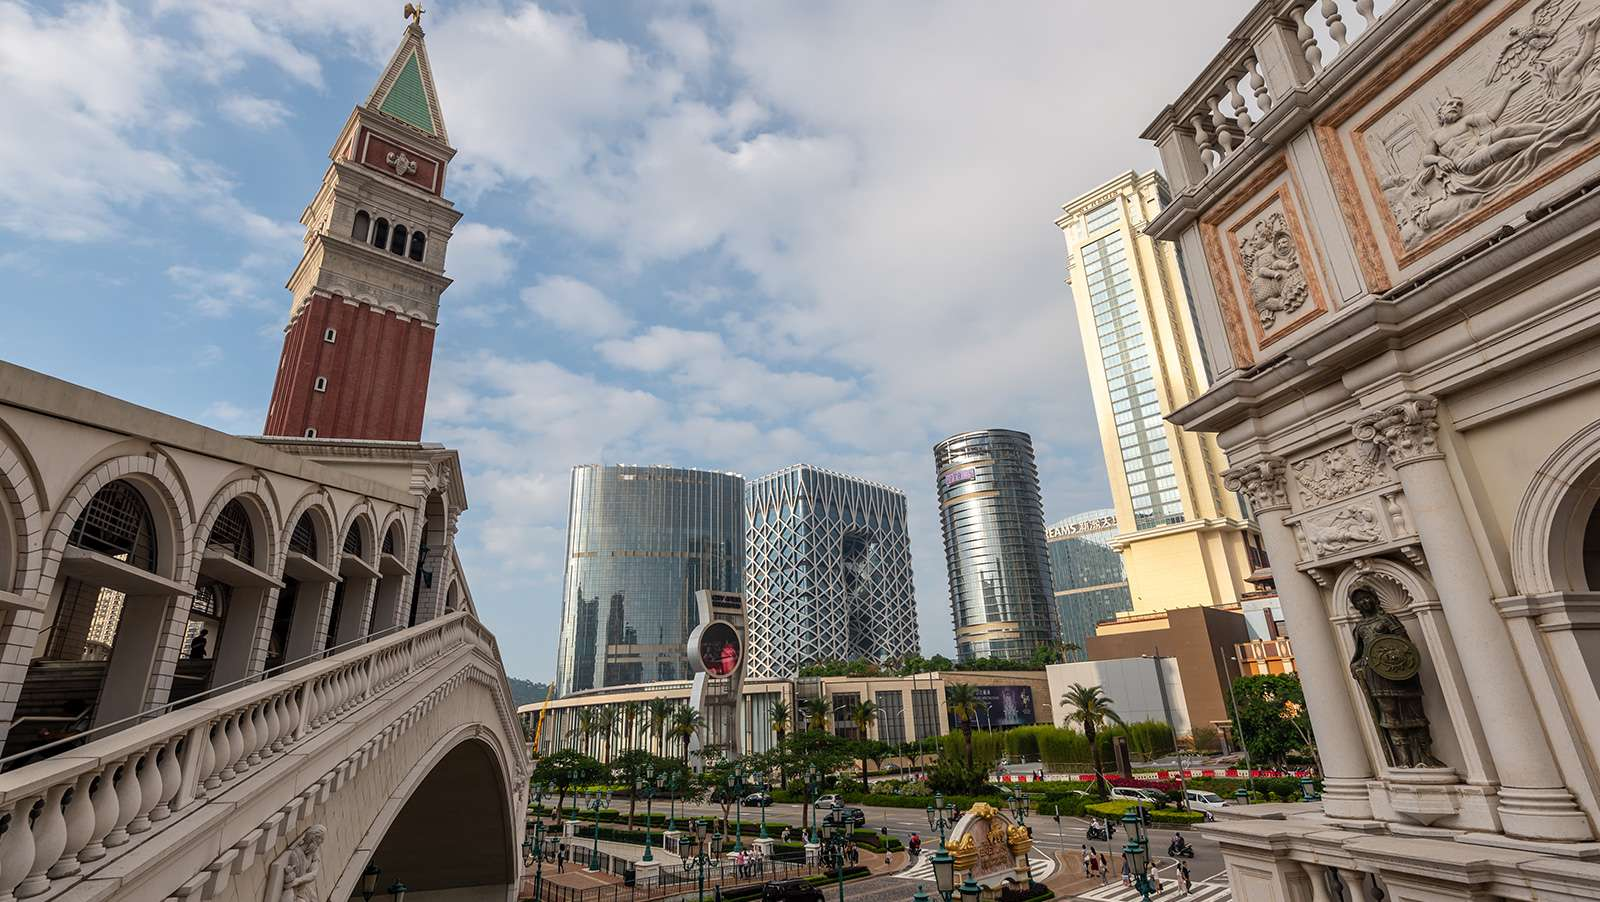 Macau could see another 1,000 hotel rooms, or more, added each year